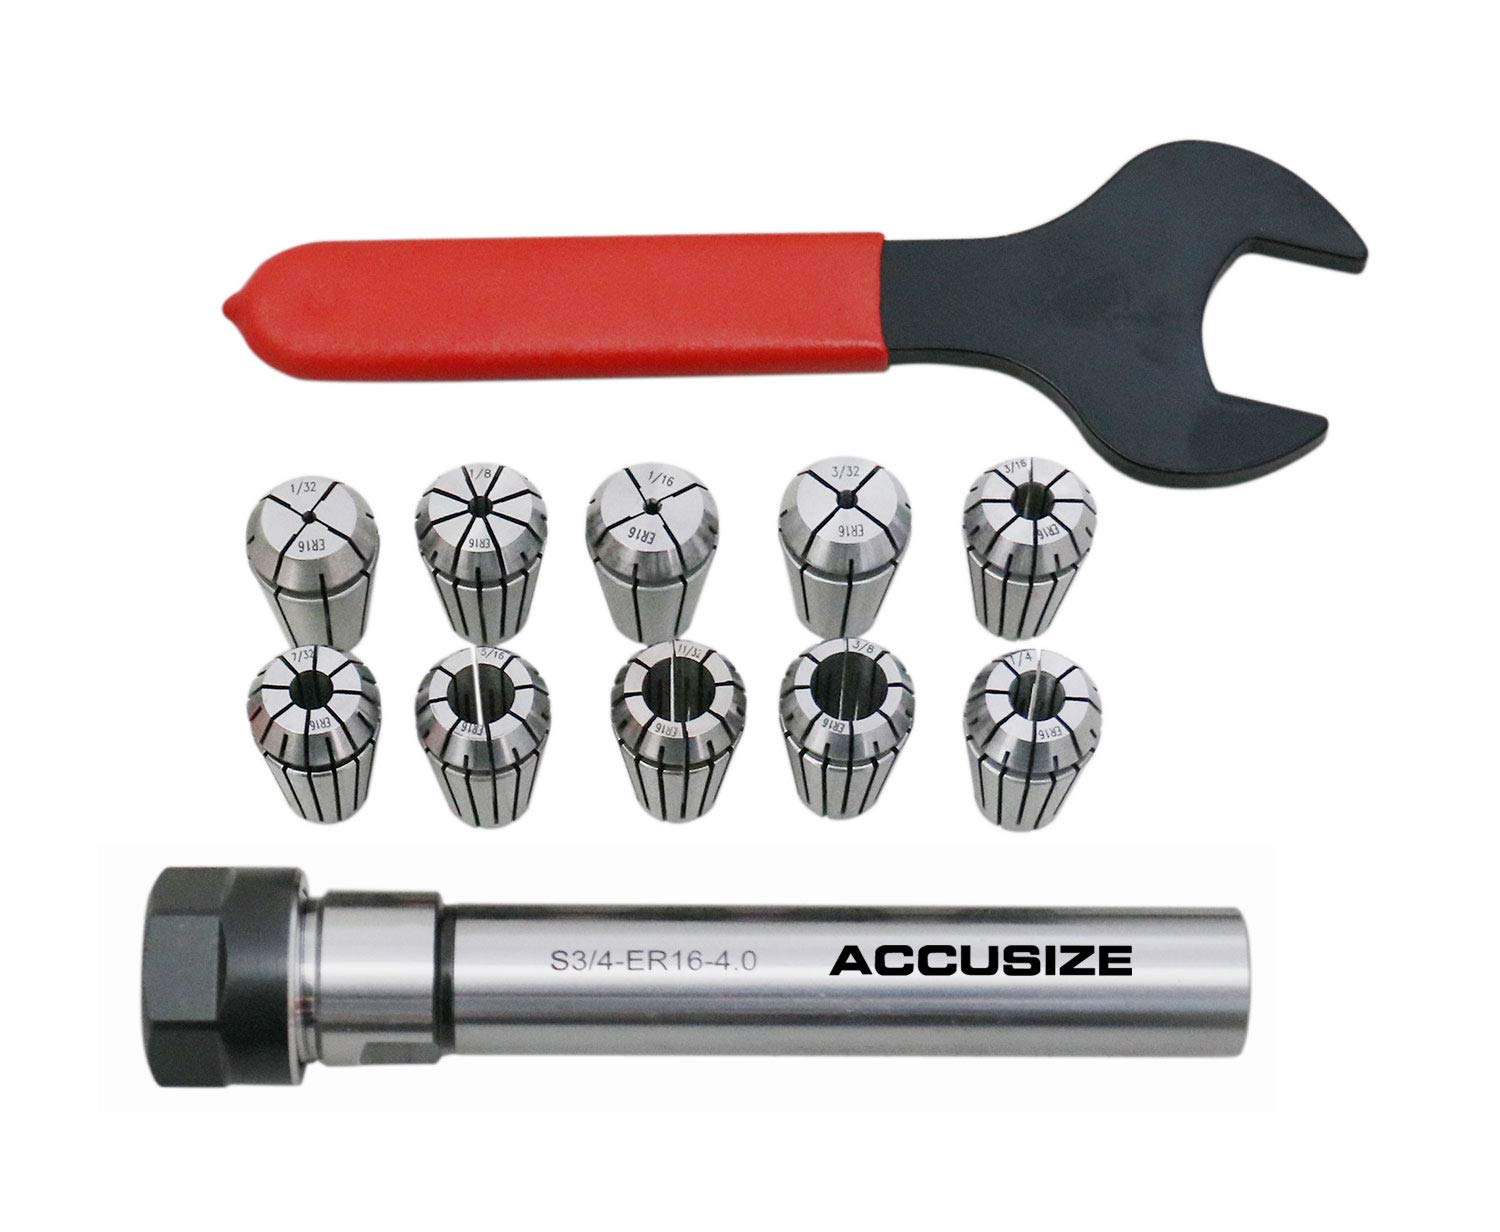 AccusizeTools - 10 pc ER16 collet set, 1/32'' to 3/8'', plus a 3/4'' straight shank collet holder, 0223-0307